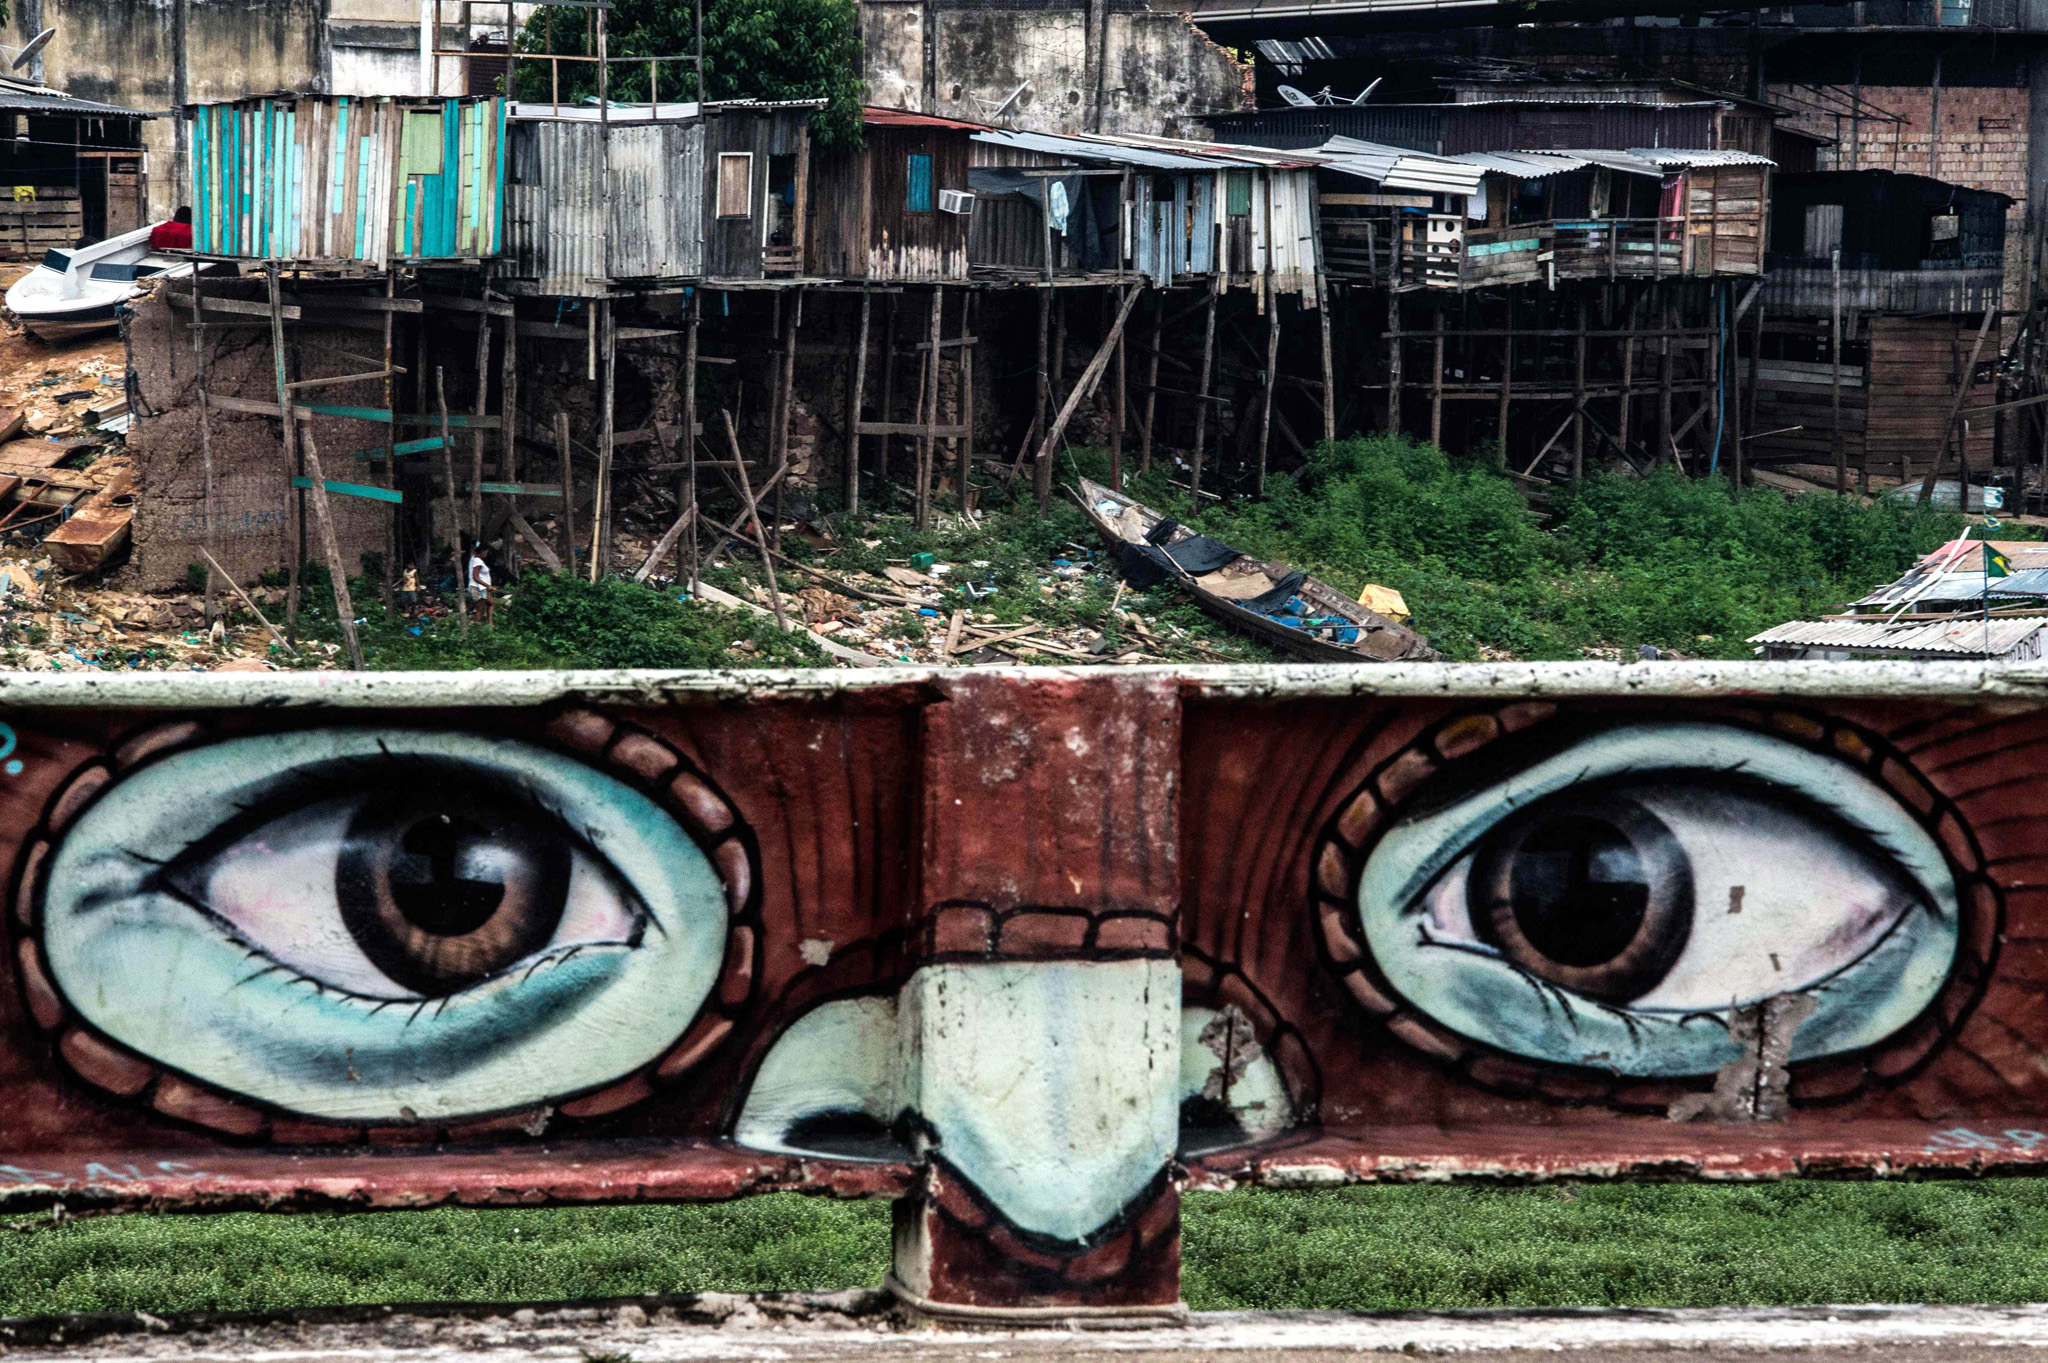 TOPSHOT - A mural is seen with a slum in...TOPSHOT - A mural is seen with a slum in the background on the bank of the Rio Negro (Black River), in Manaus, Amazonas state, Brazil on December 11, 2015.